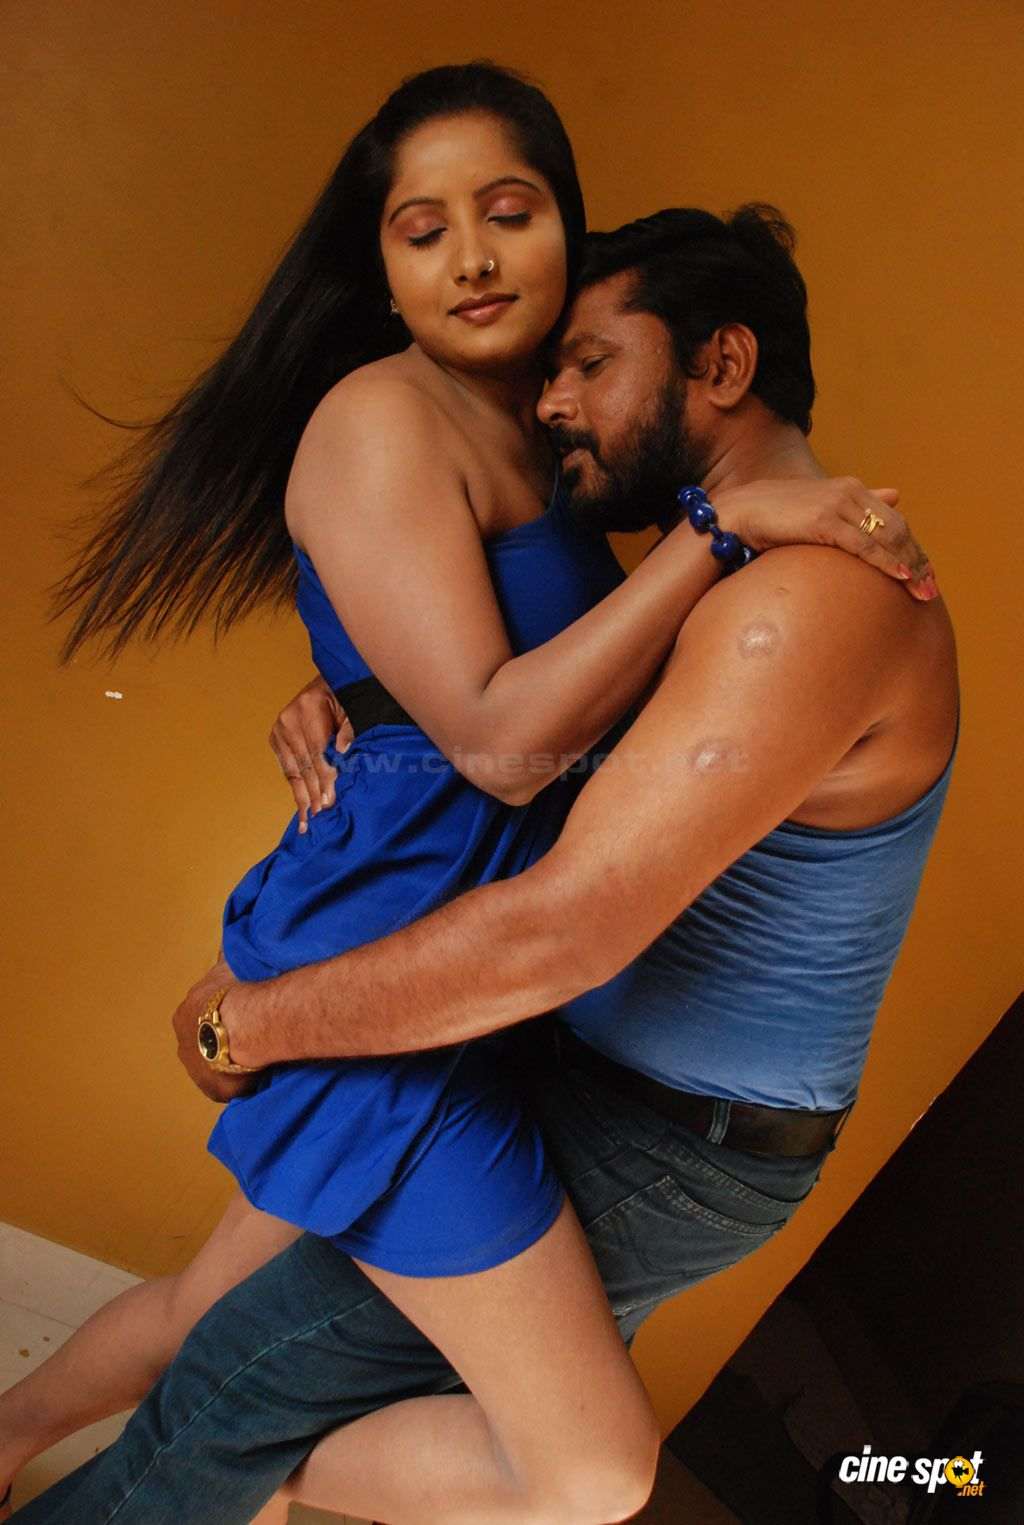 ... Pics - Photos with Poetry: Tamil Mallu Aunty Hot Romance with Servant